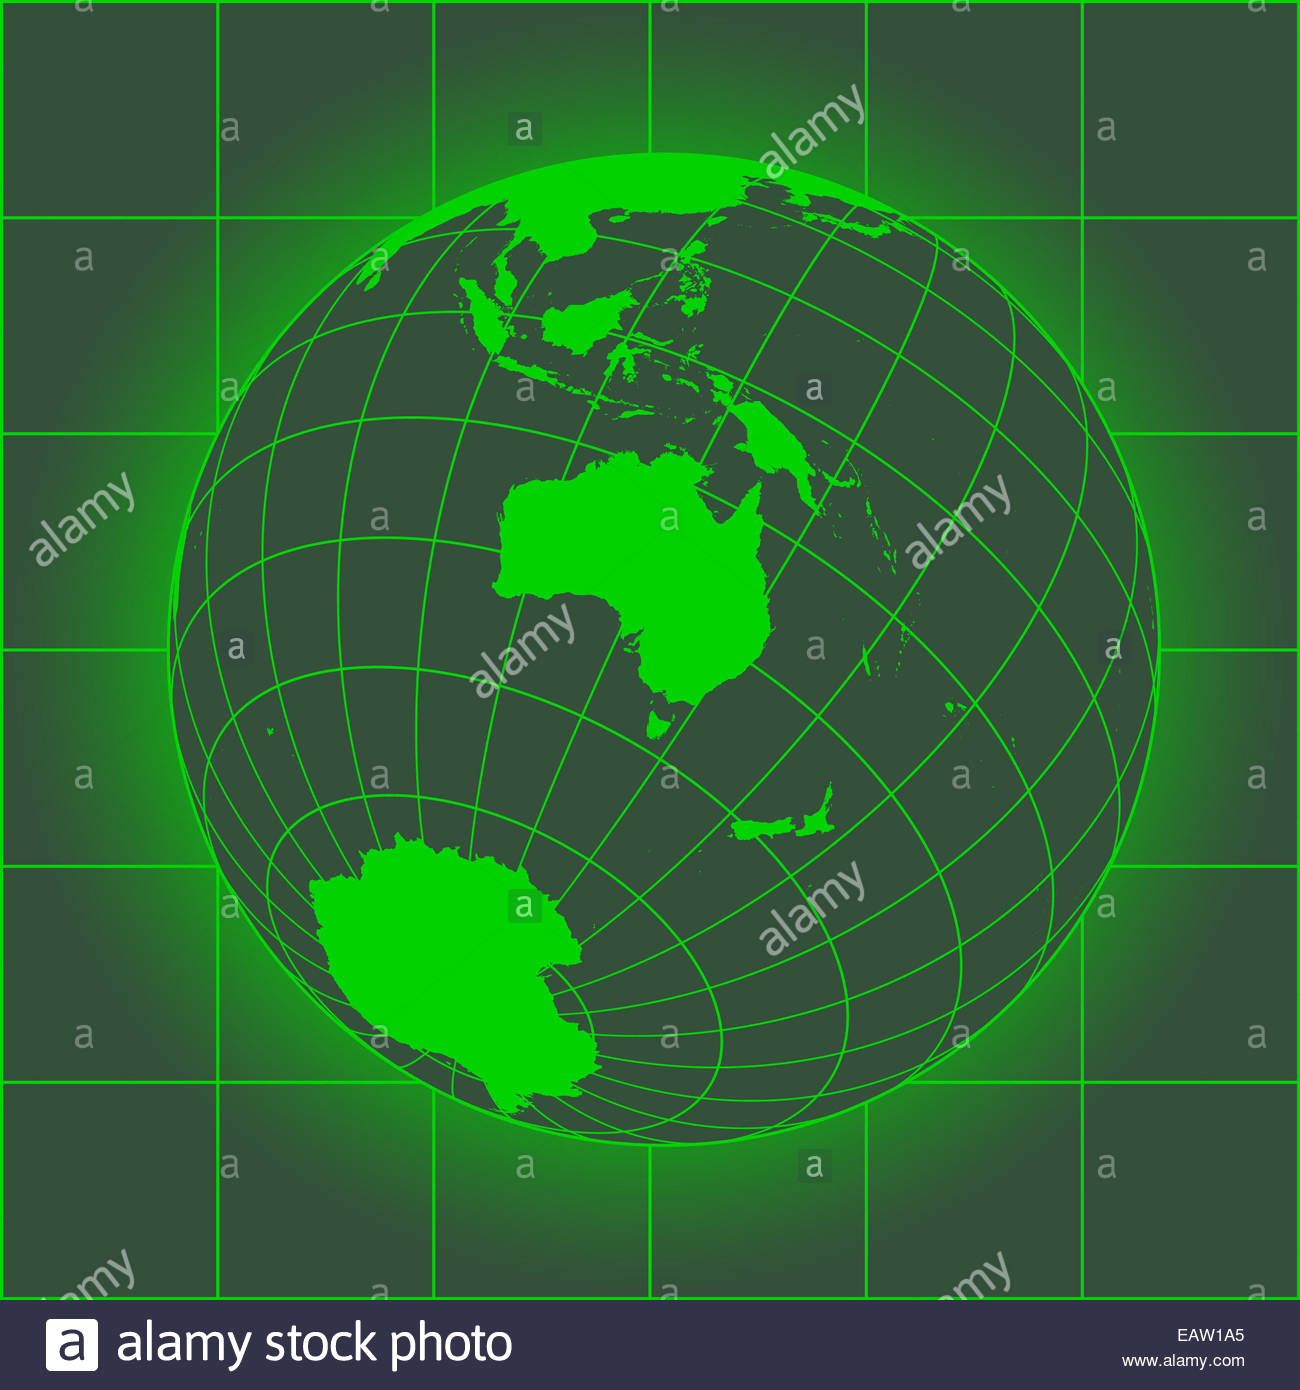 green australia map asia russia antarctica north pole earth globe old style map of the world